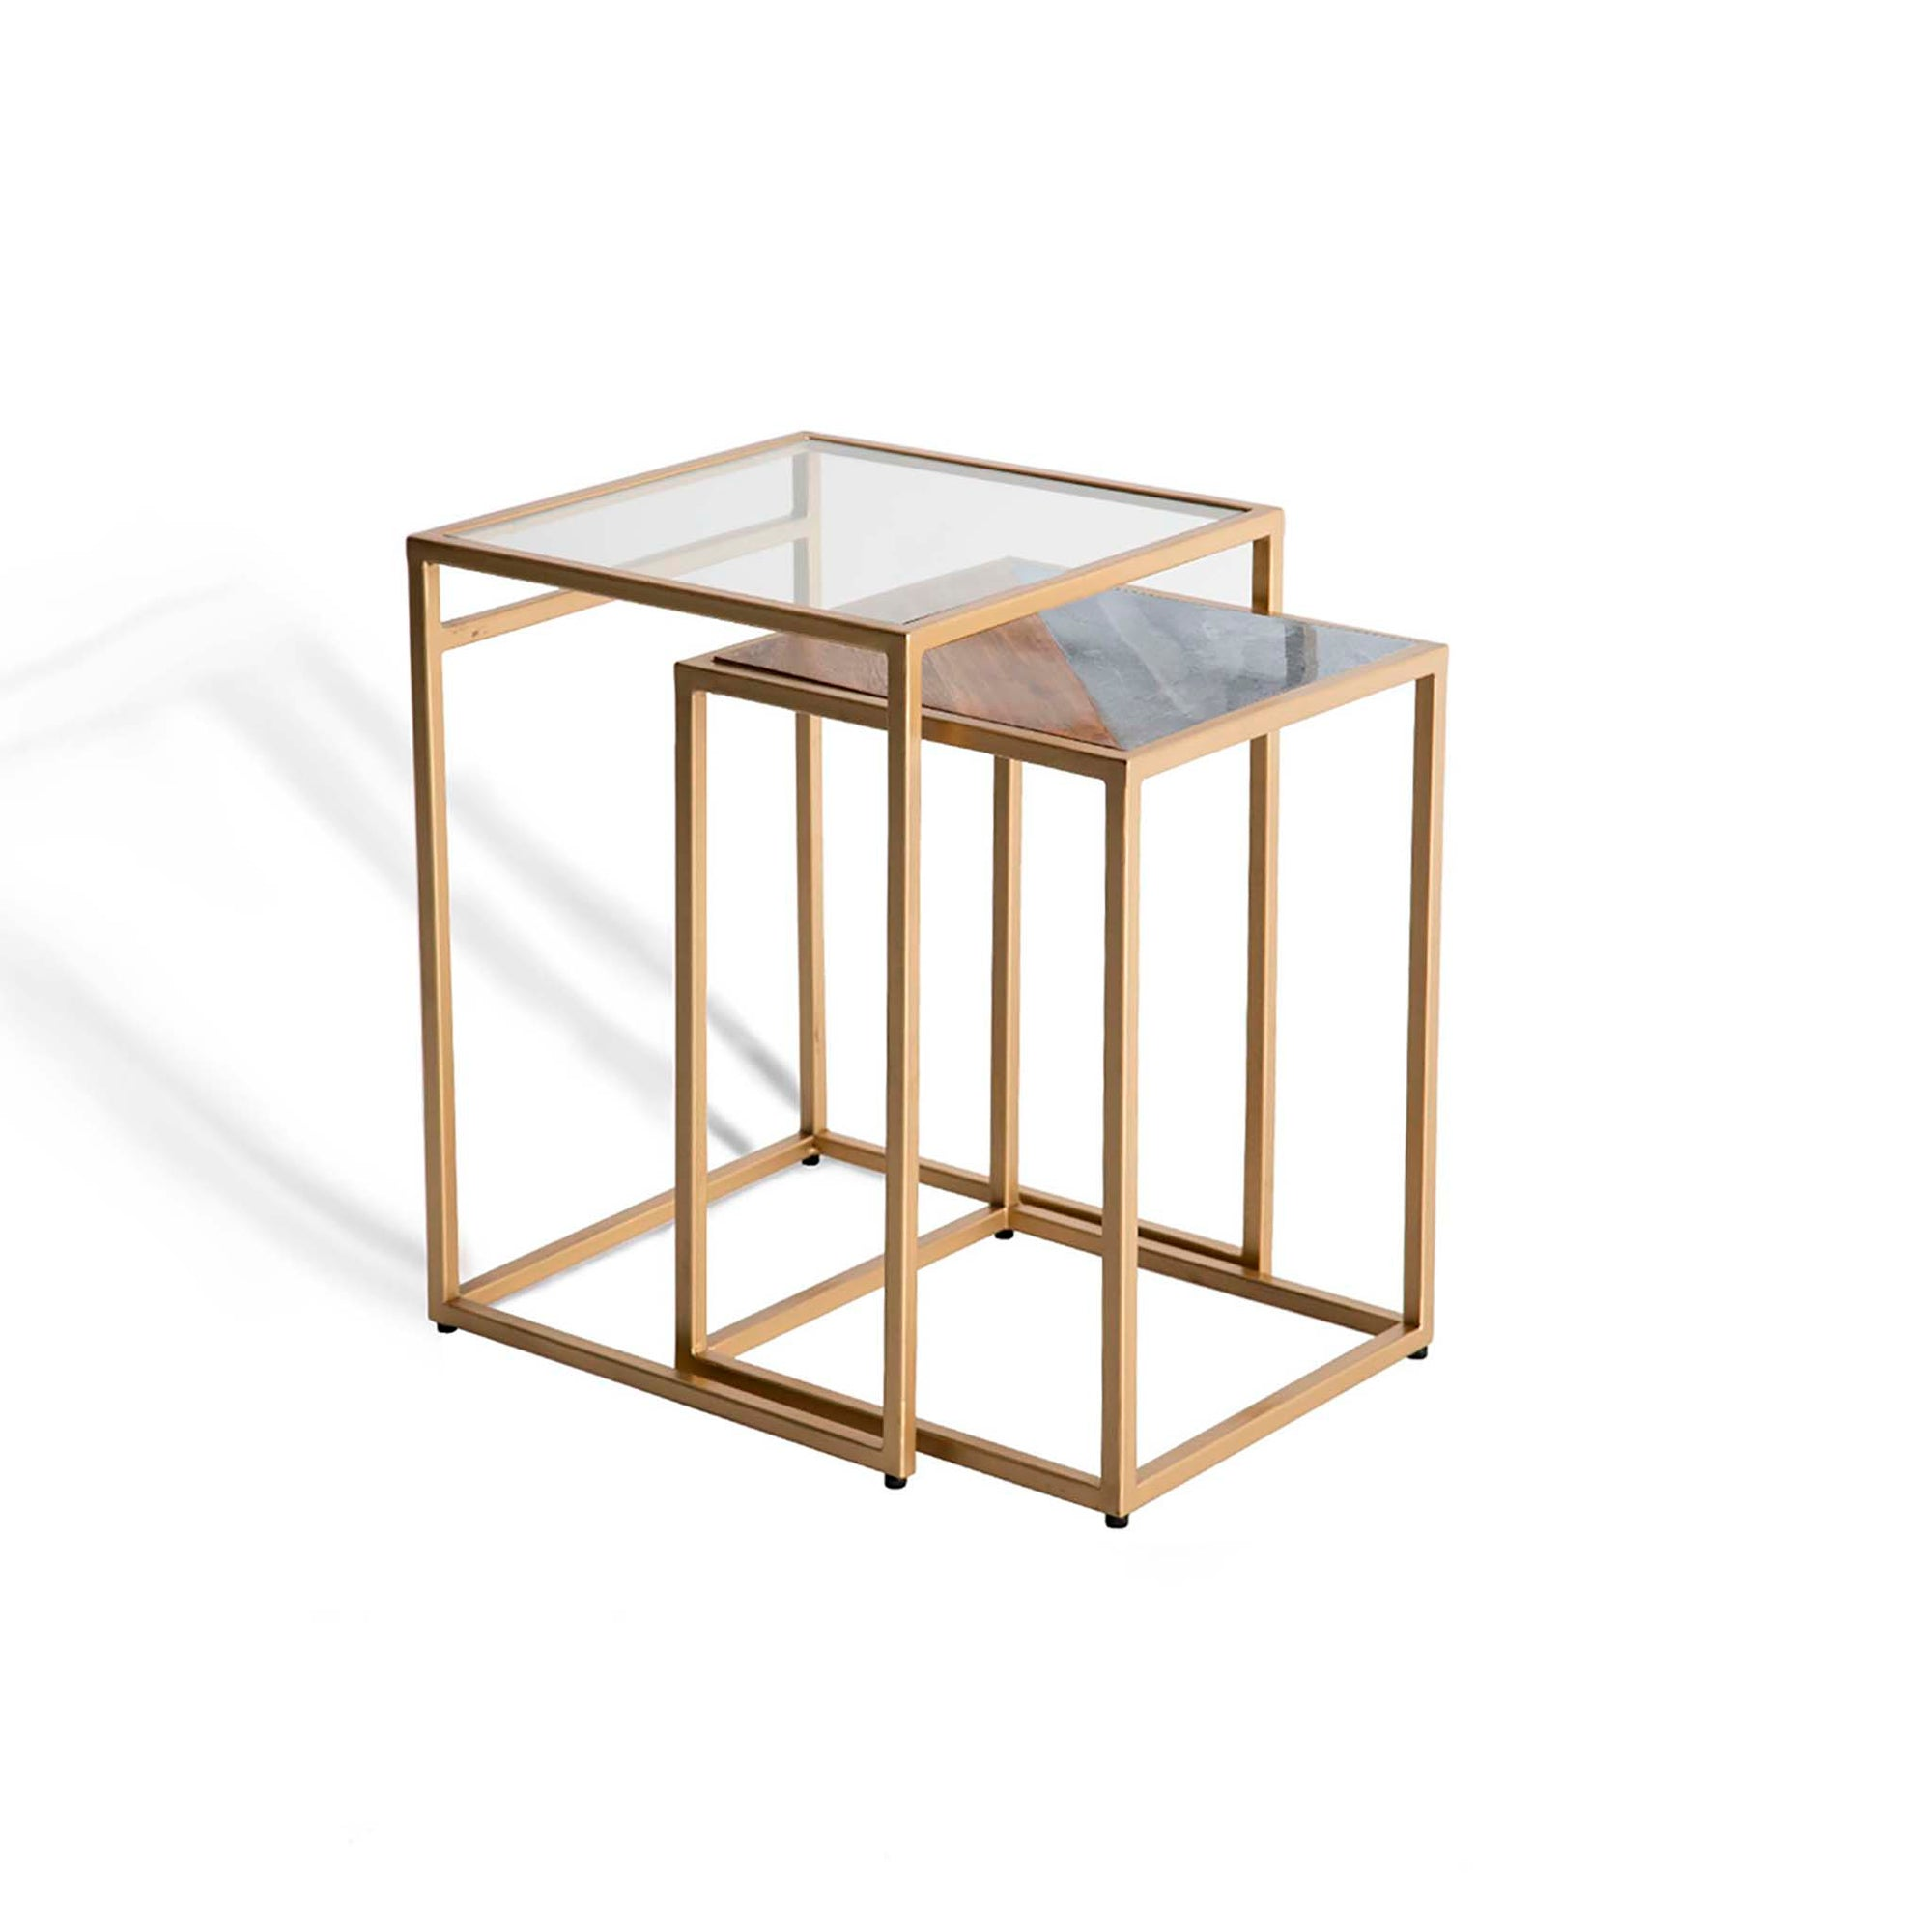 Kandla Grey Marble & Wood Square Nest of Tables with Gold Base by Roseland Furniture